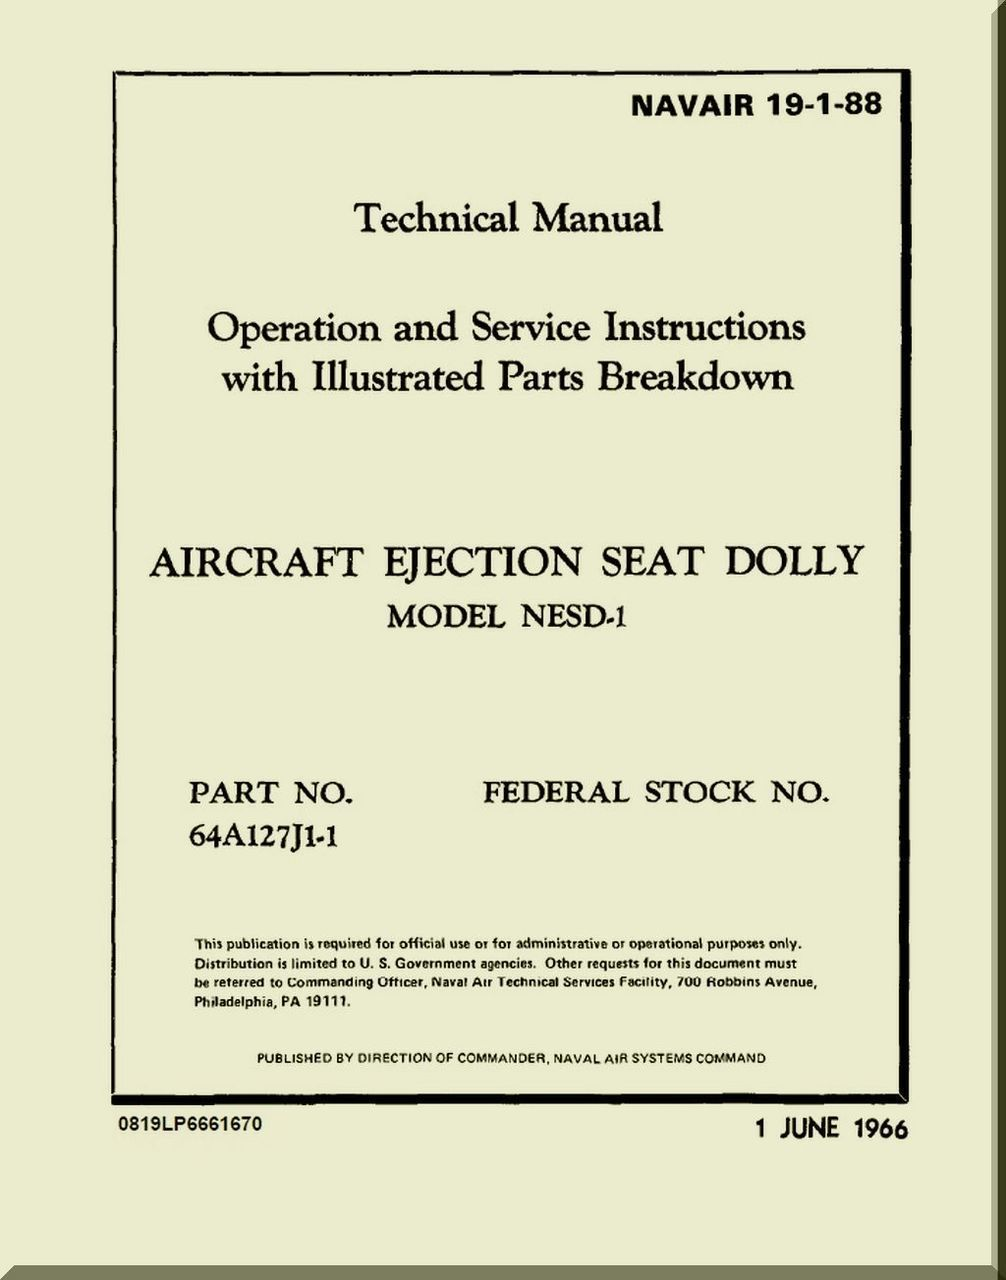 technical manual operation and service instructions with rh pinterest com navair technical manual 00-25-8 NAVAIR Publications